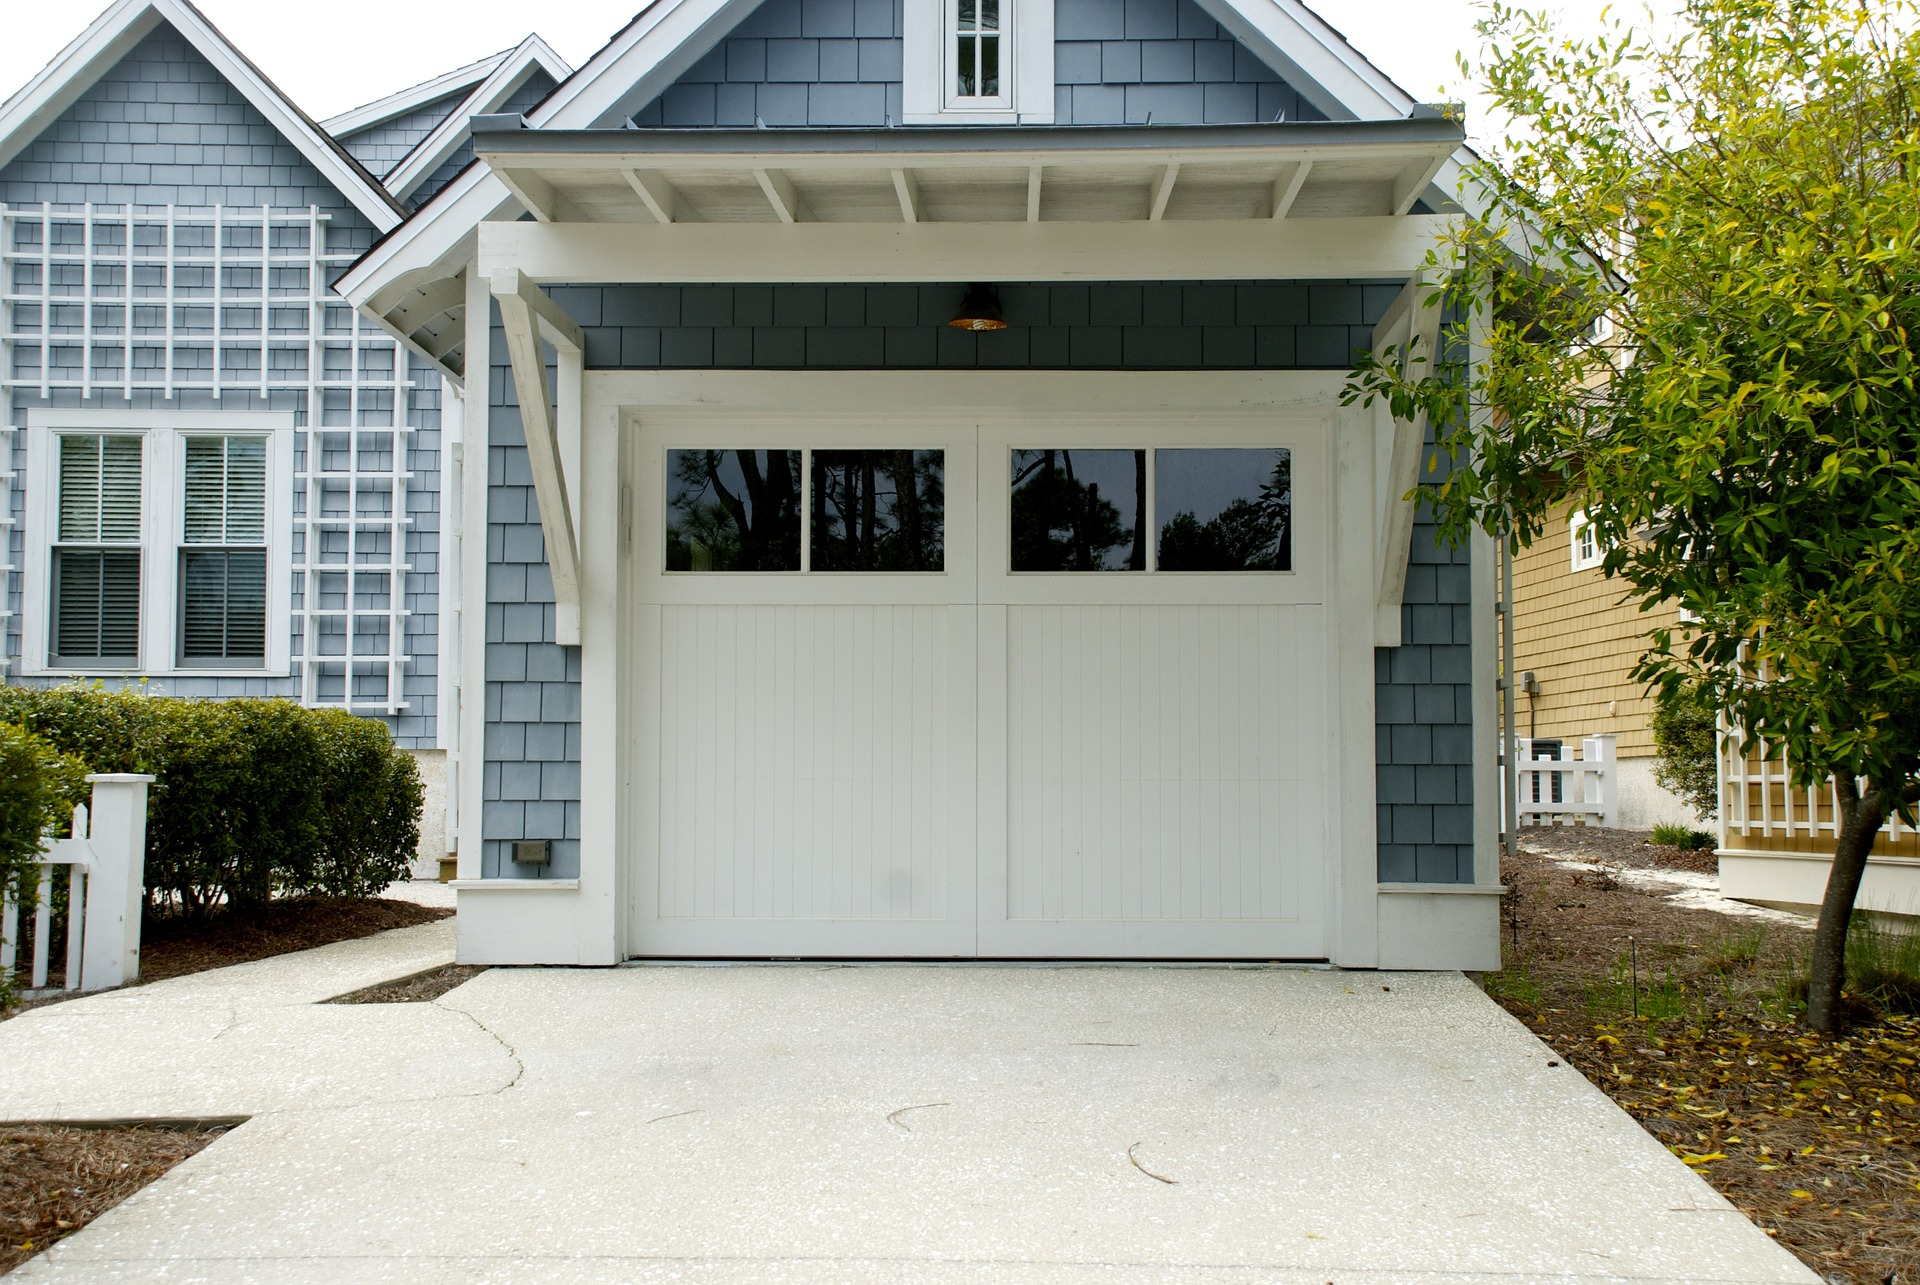 Garage Door Insulation in Santa Monica